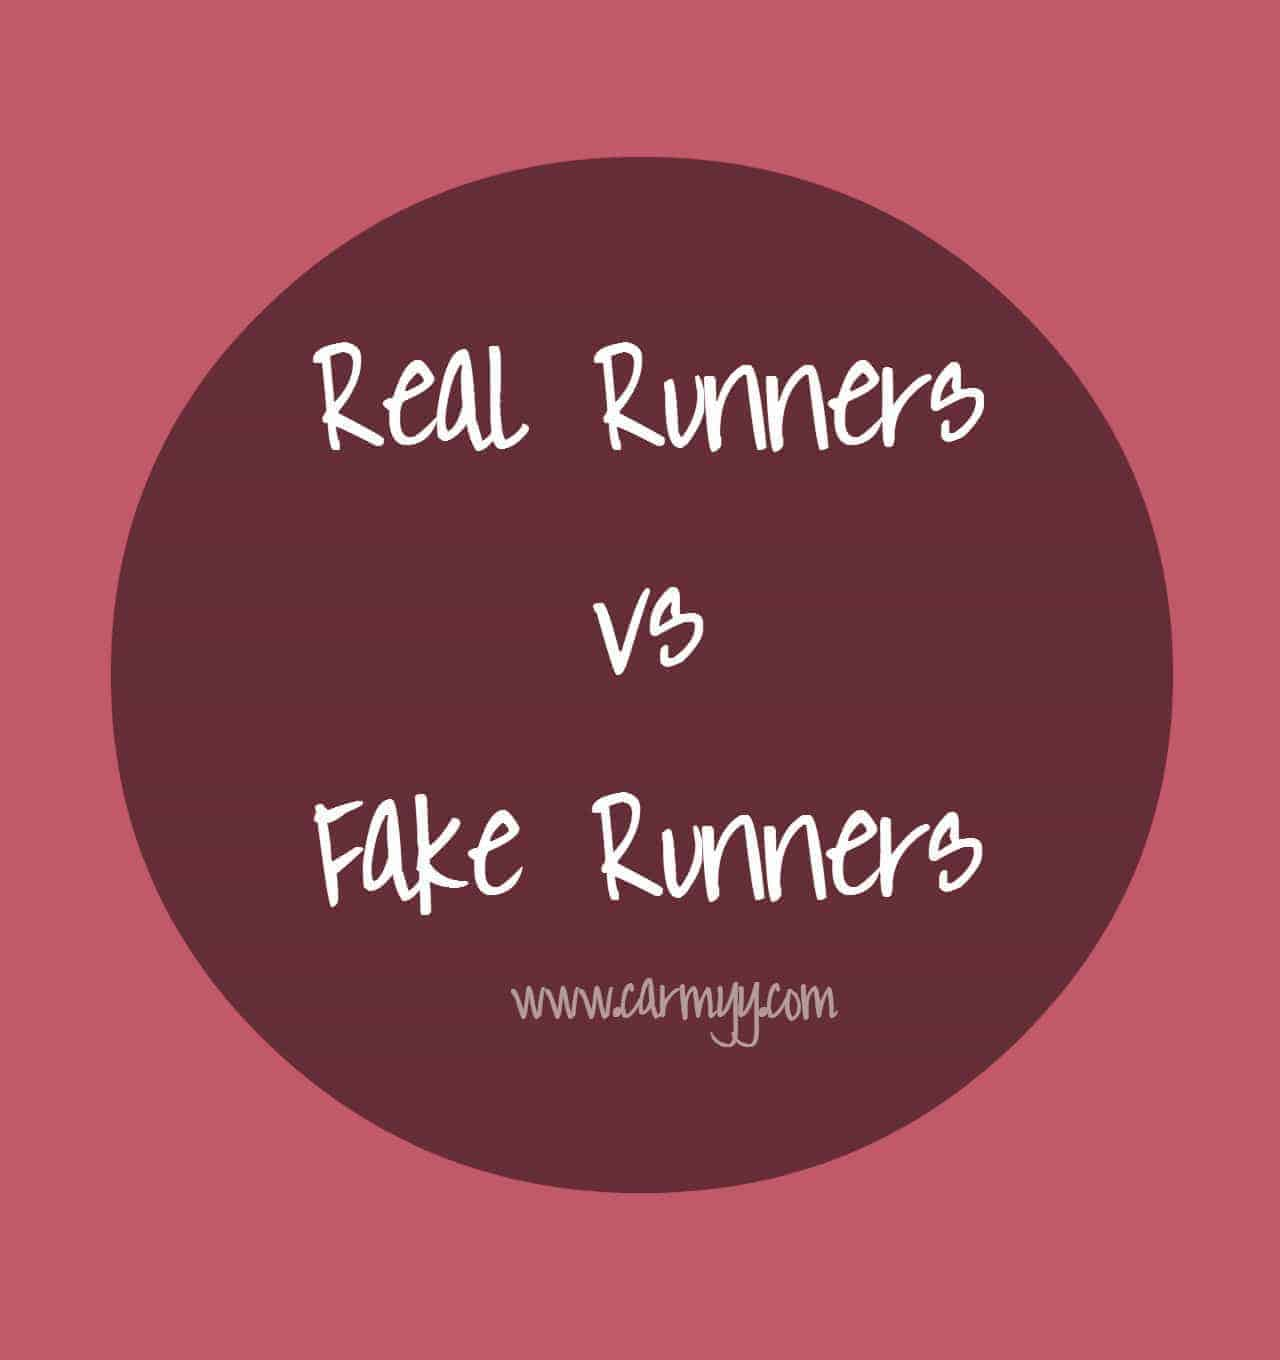 Real Runners vs Fake Runners